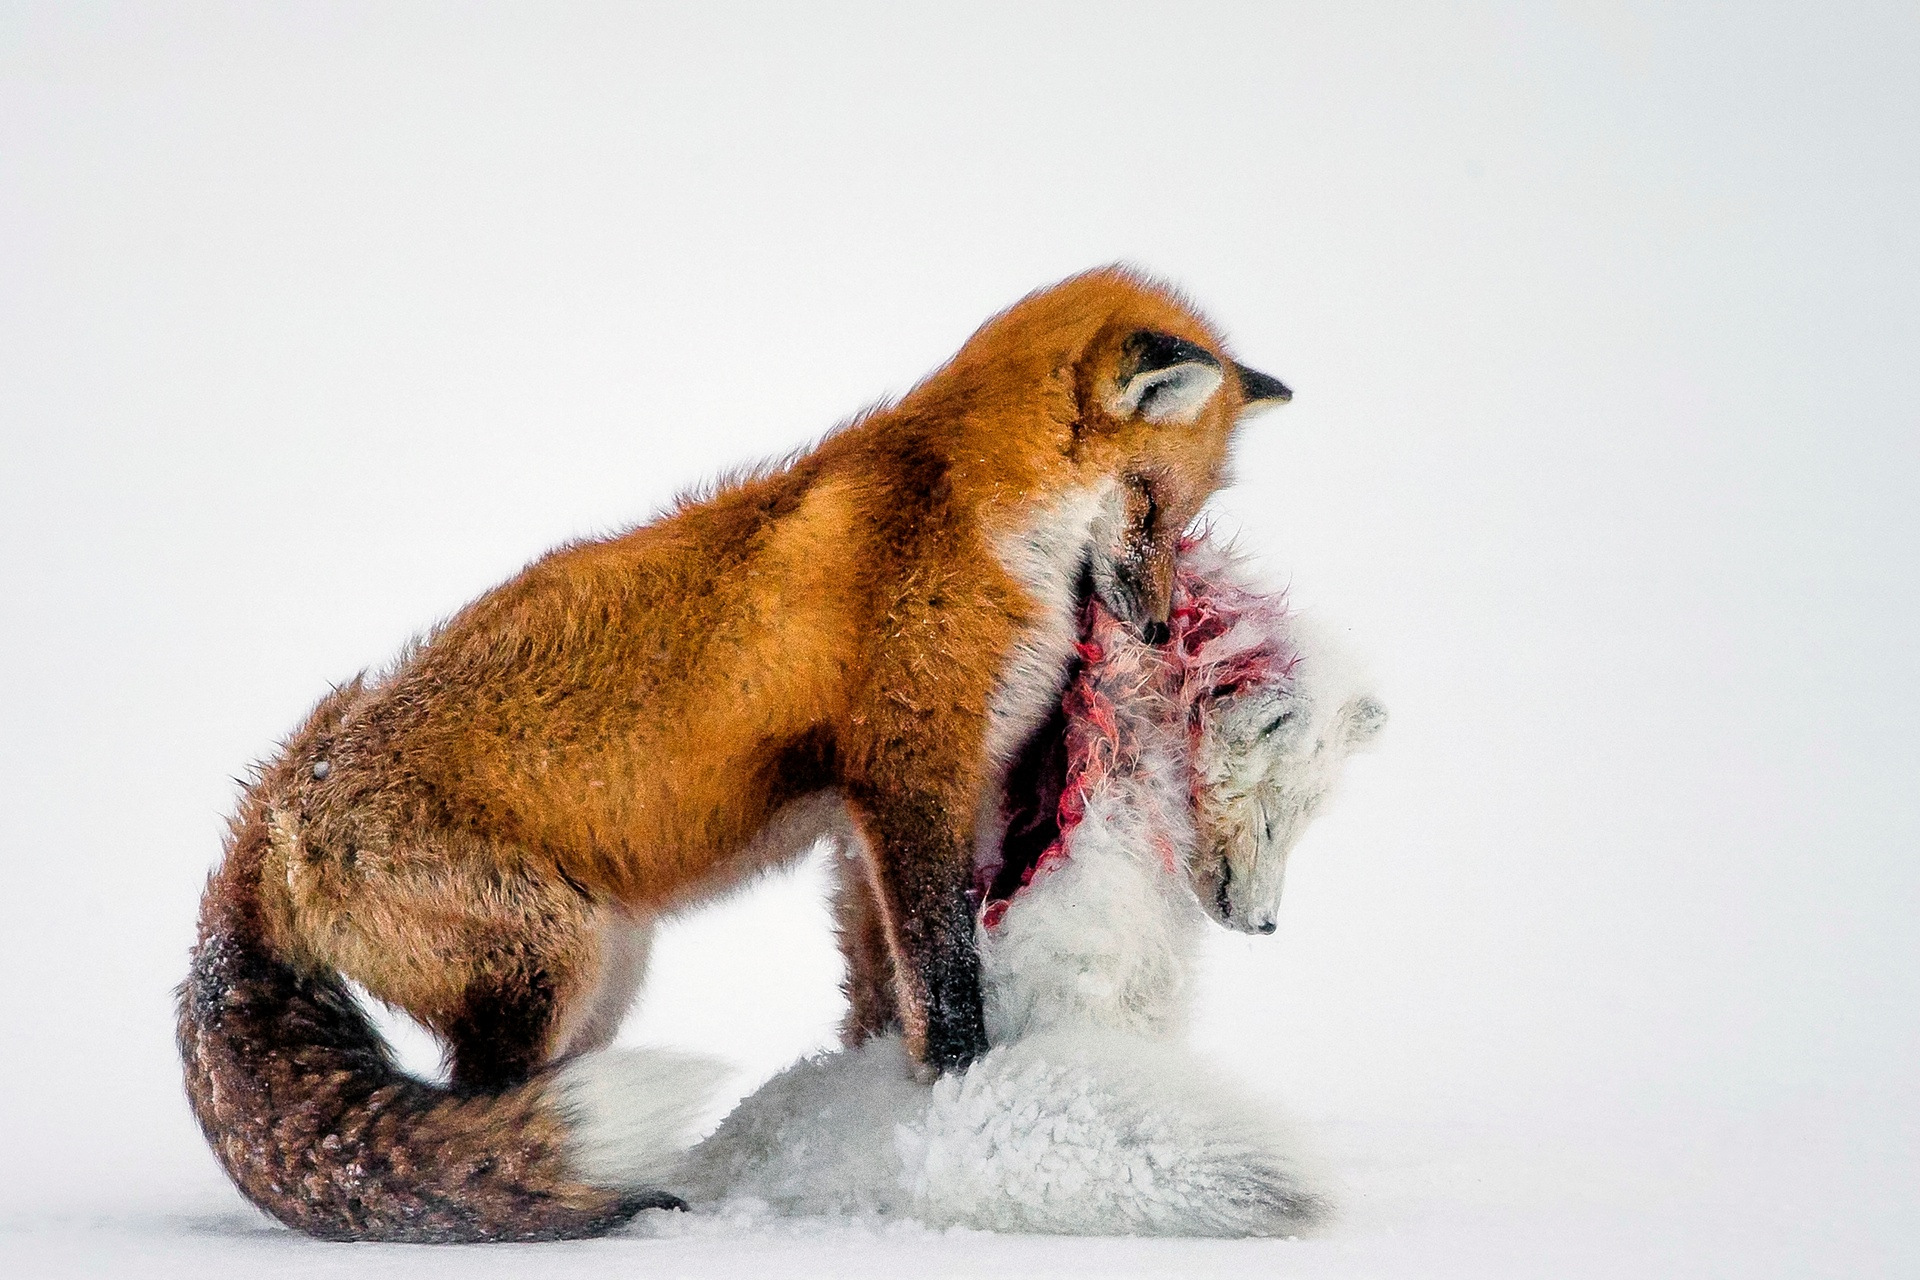 Pobediteli fotokonkursa Wild life Photographer of the Year 2015 1